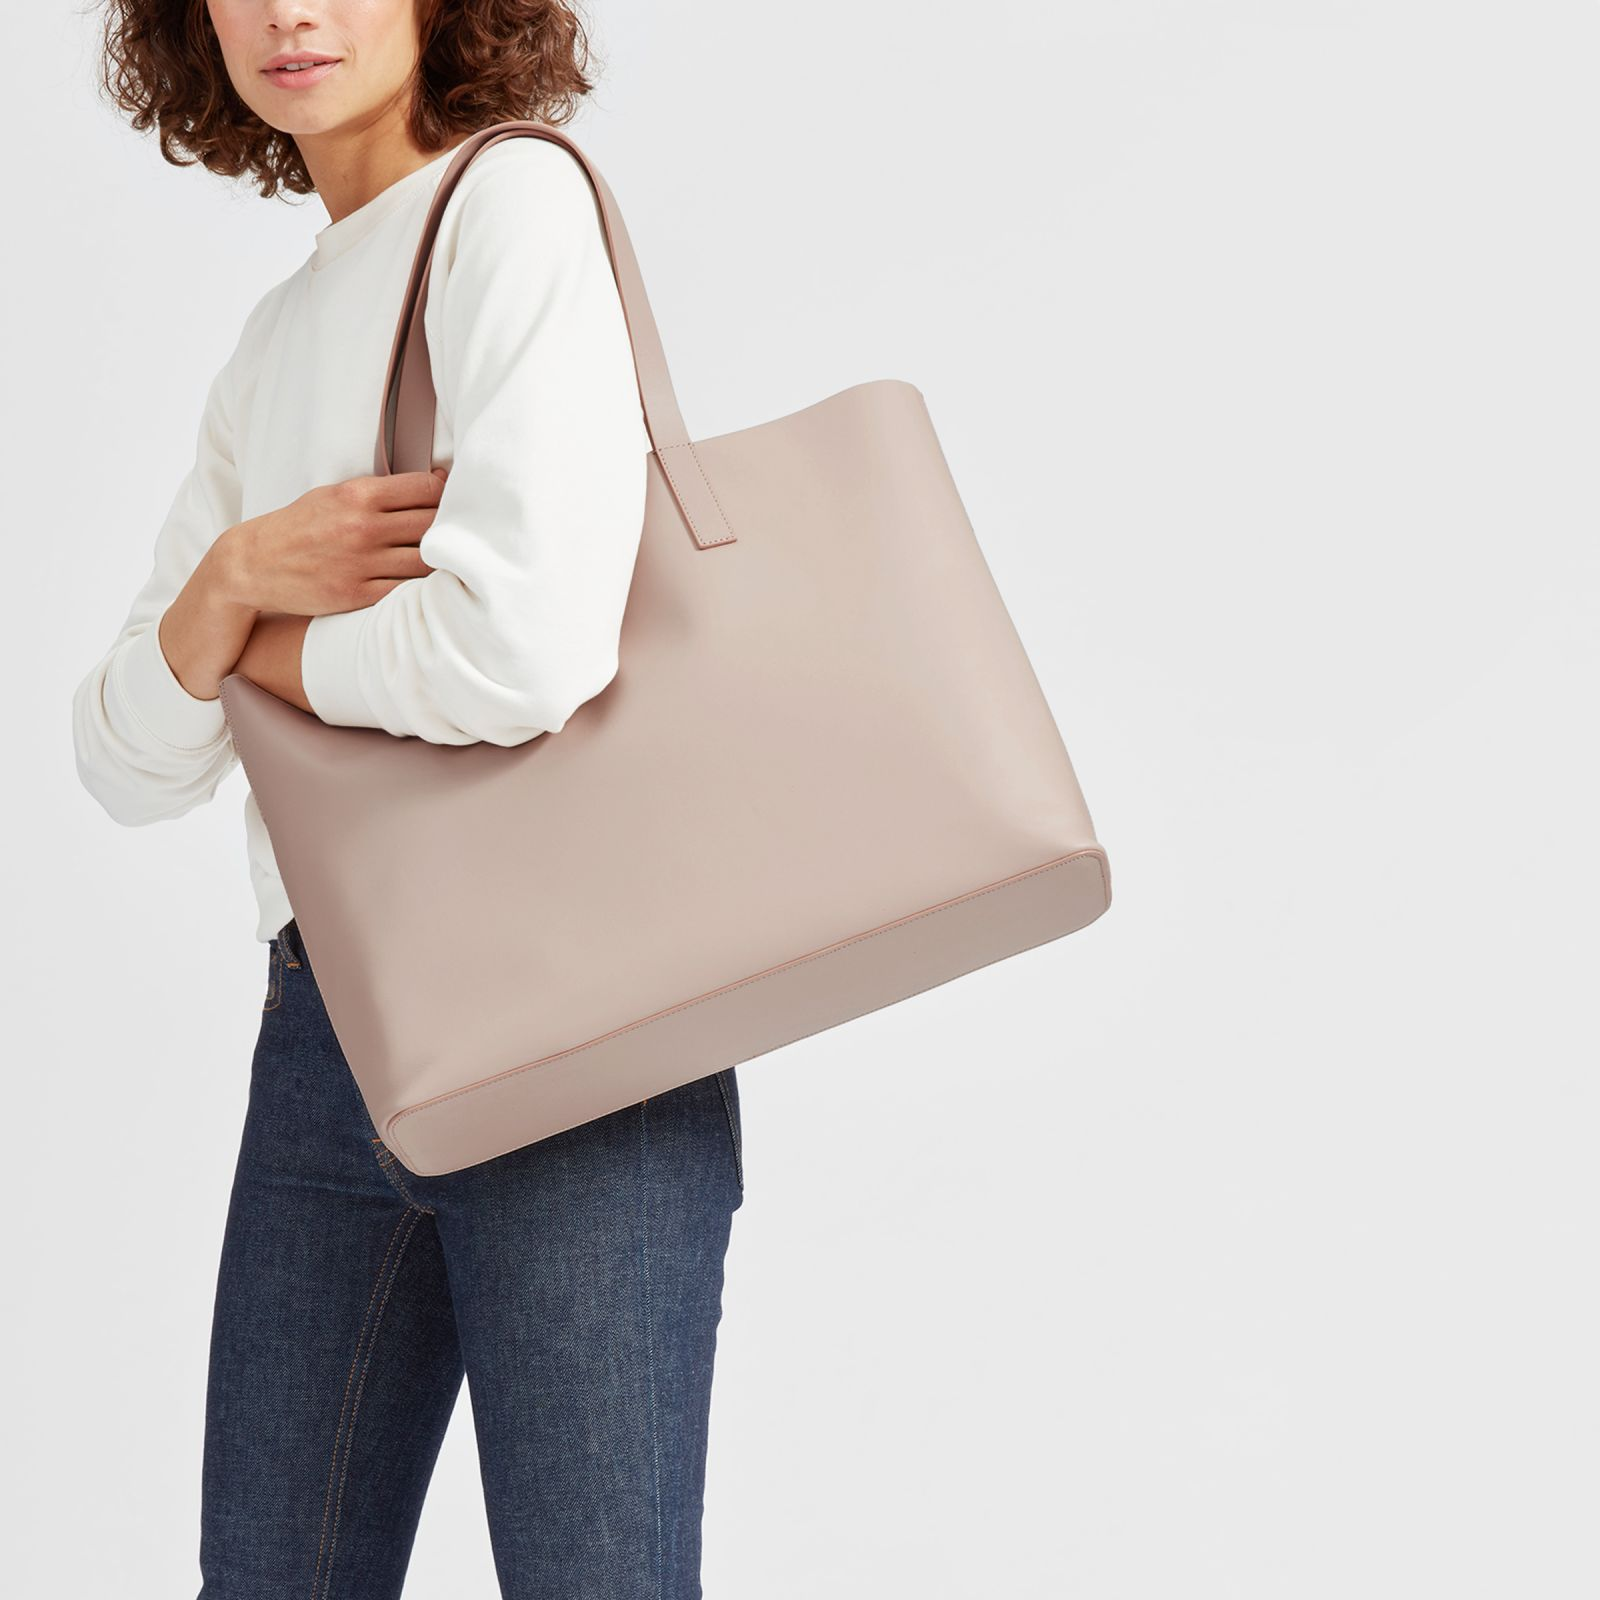 leather market tote bag by everlane in blush